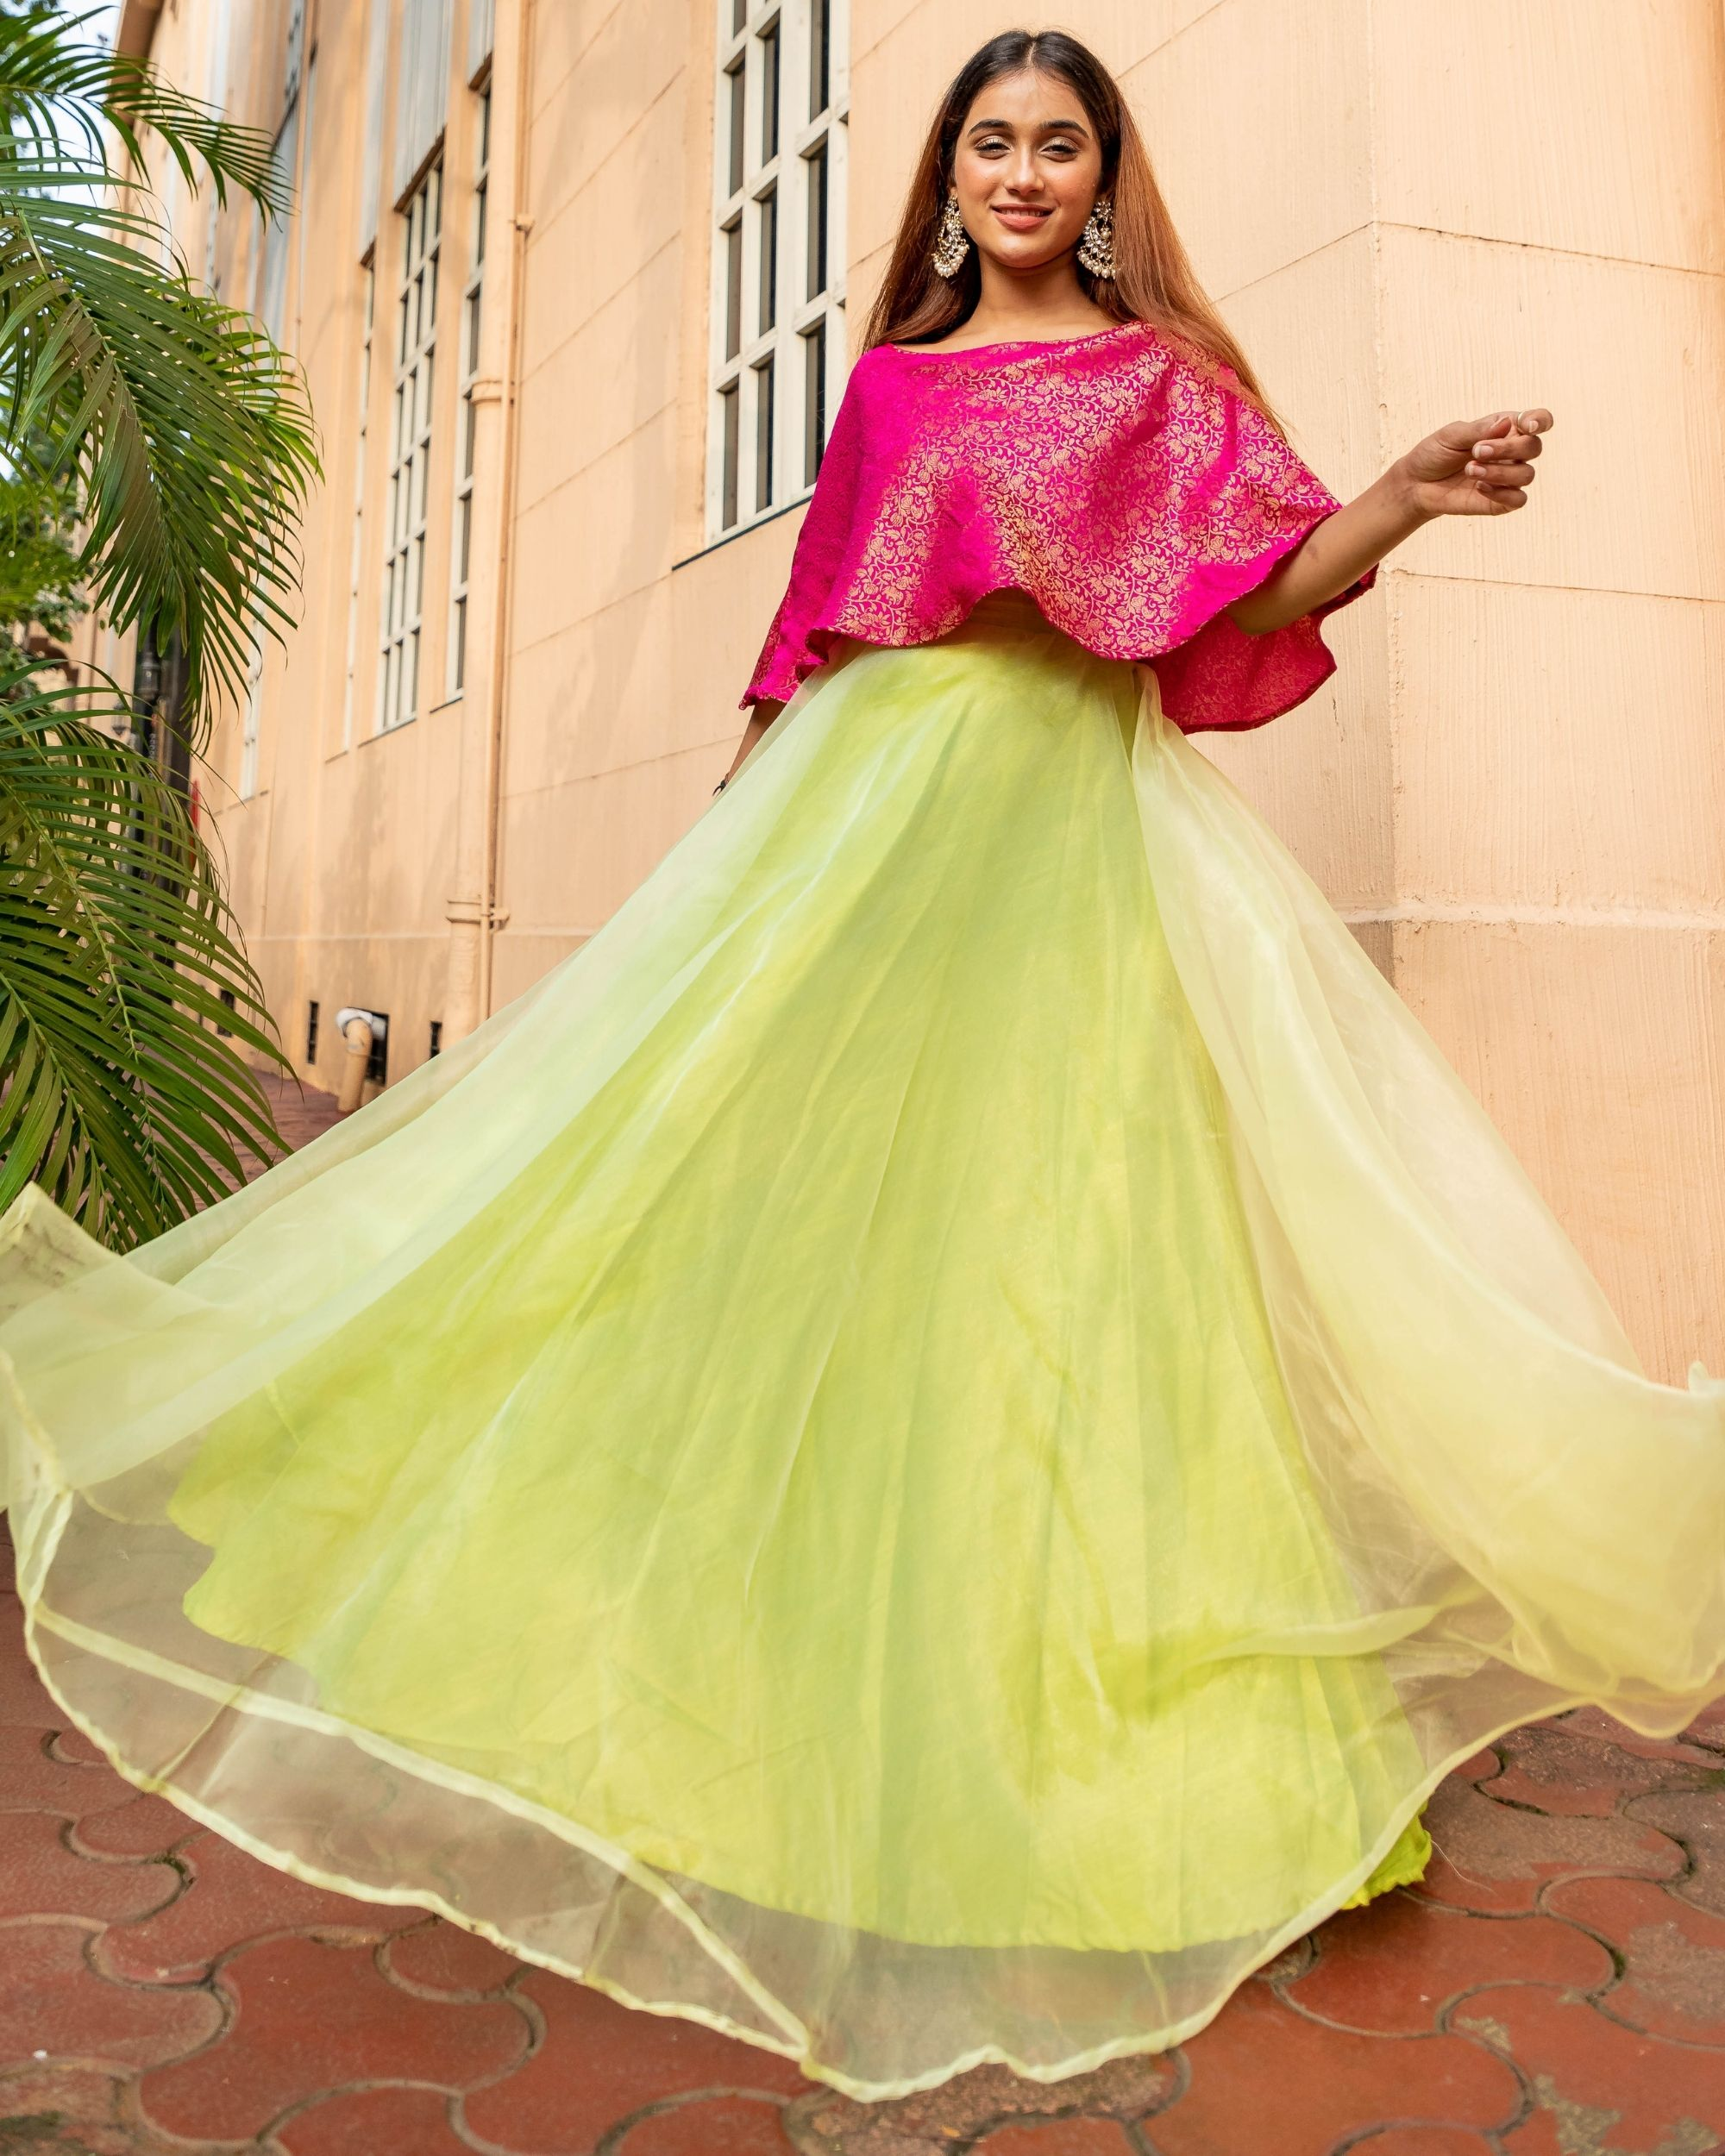 Rani pink and lime green floral jaal off shoulder flared dress